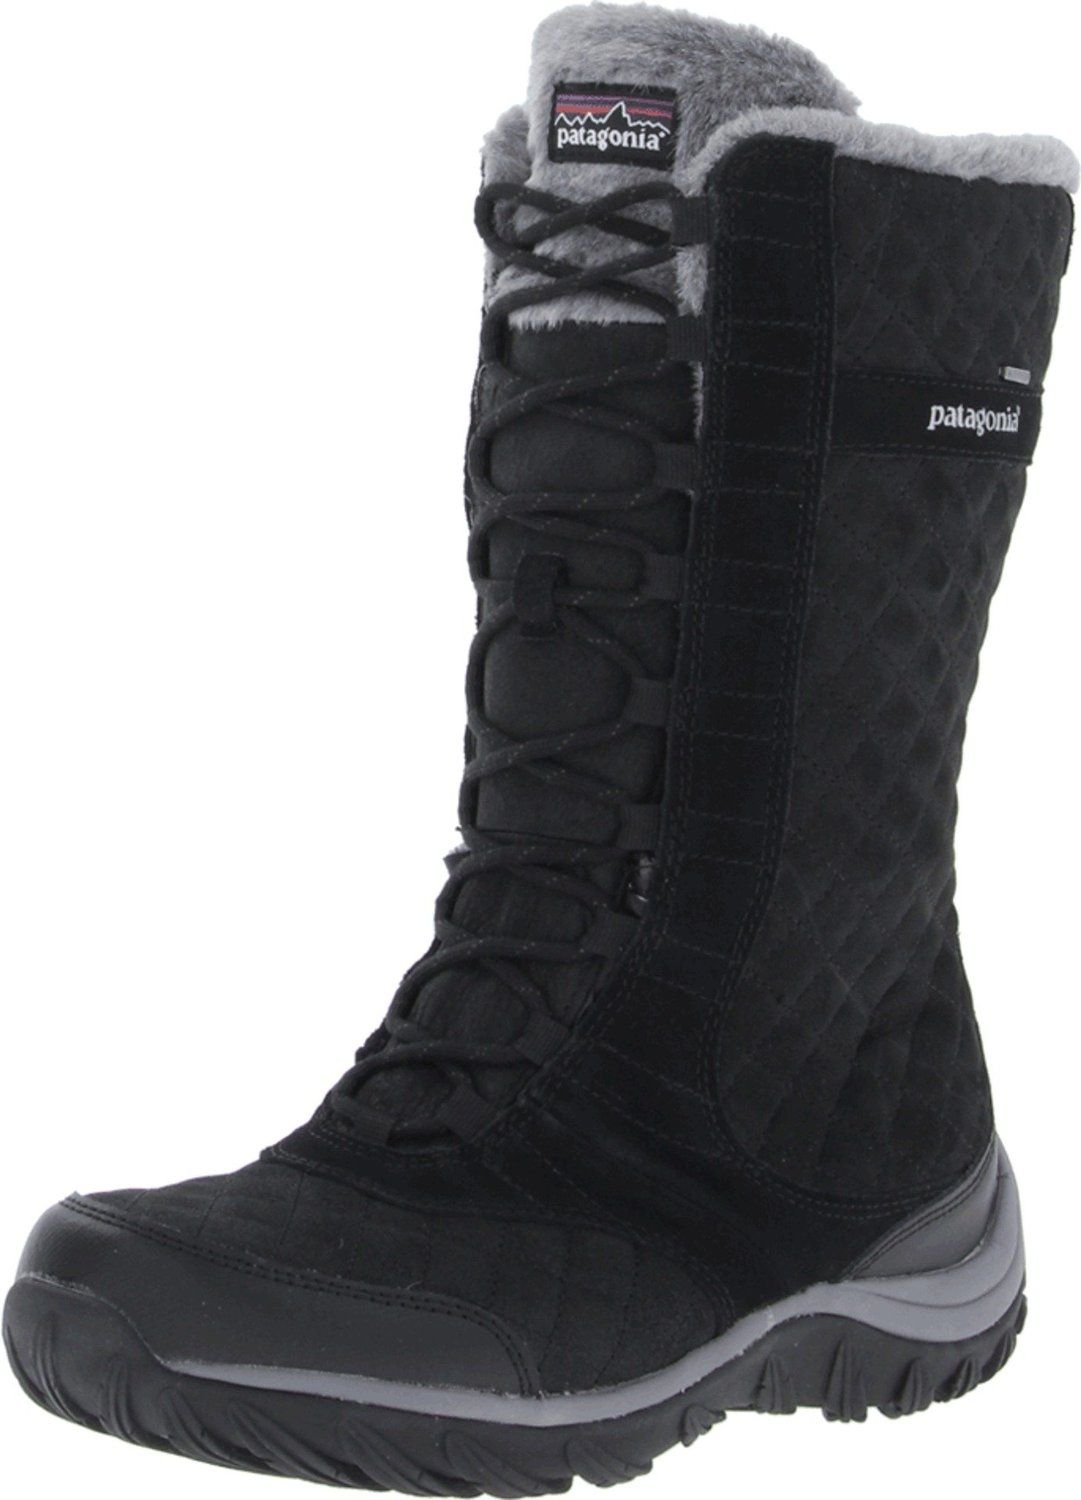 best waterproof snow boots for 2015 https